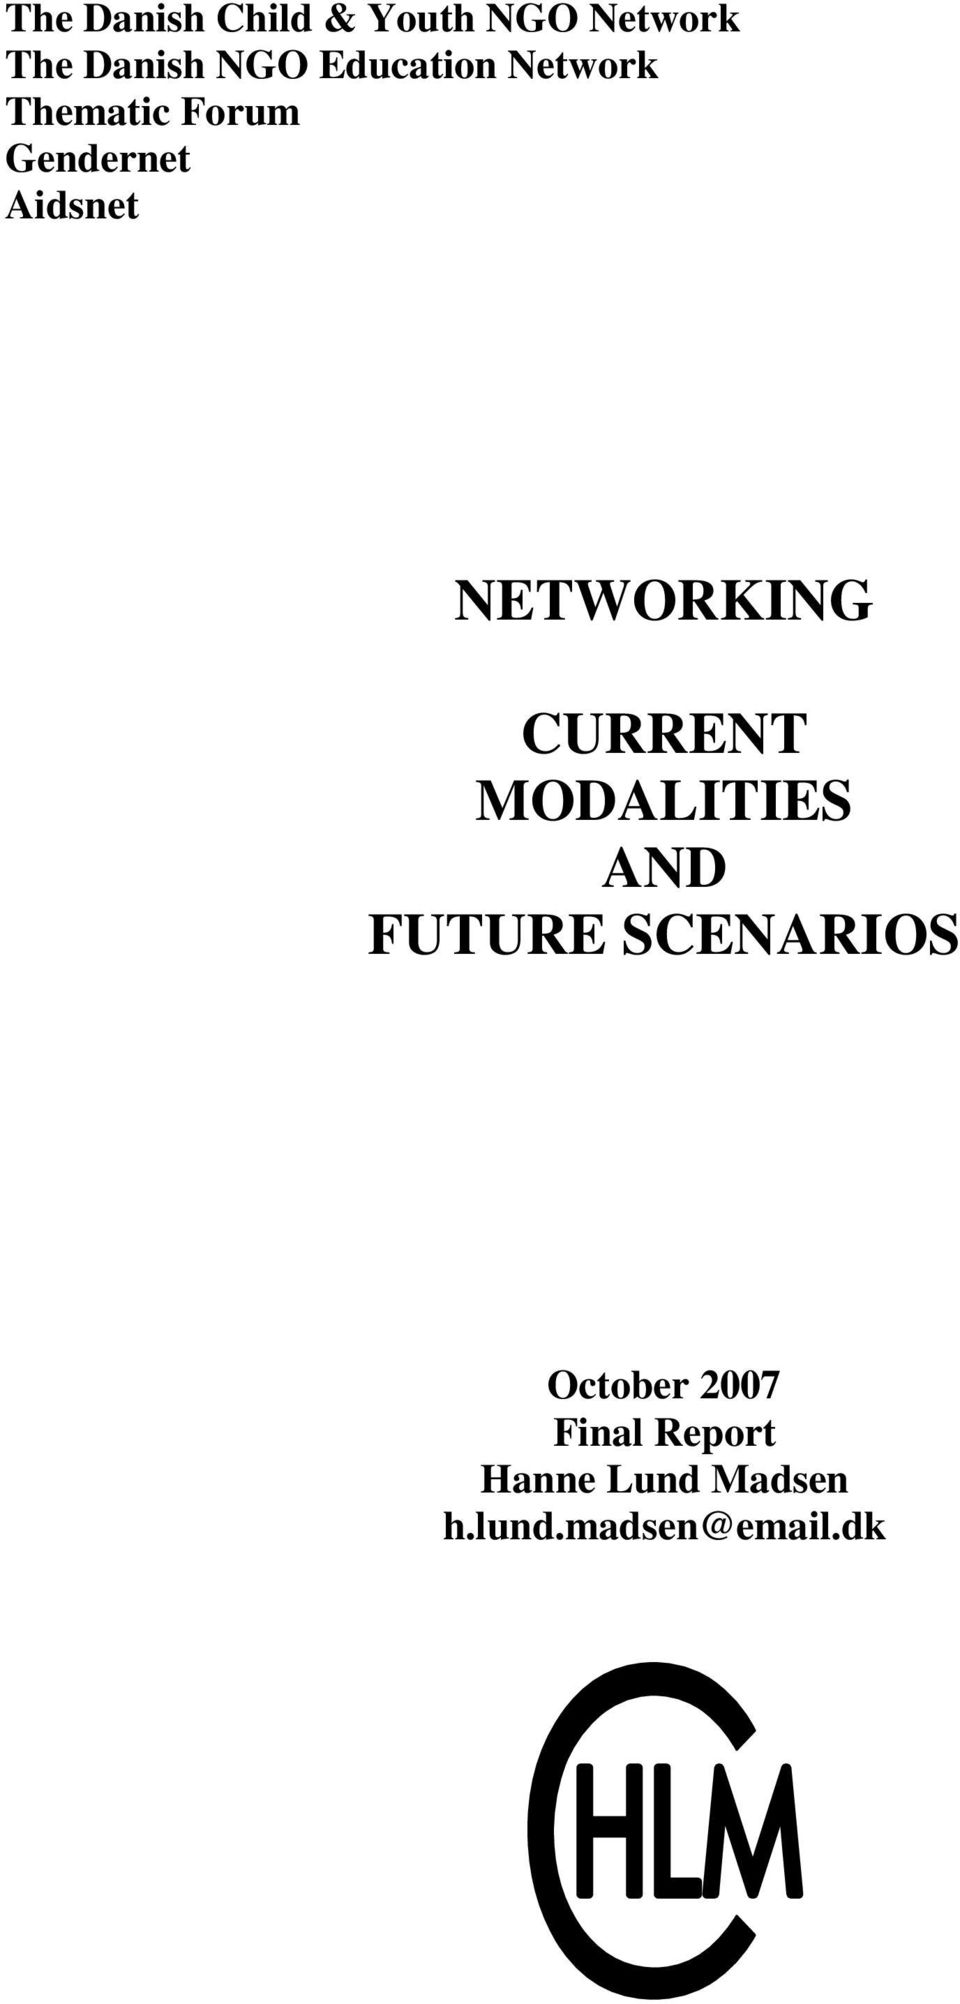 NETWORKING CURRENT MODALITIES AND FUTURE SCENARIOS